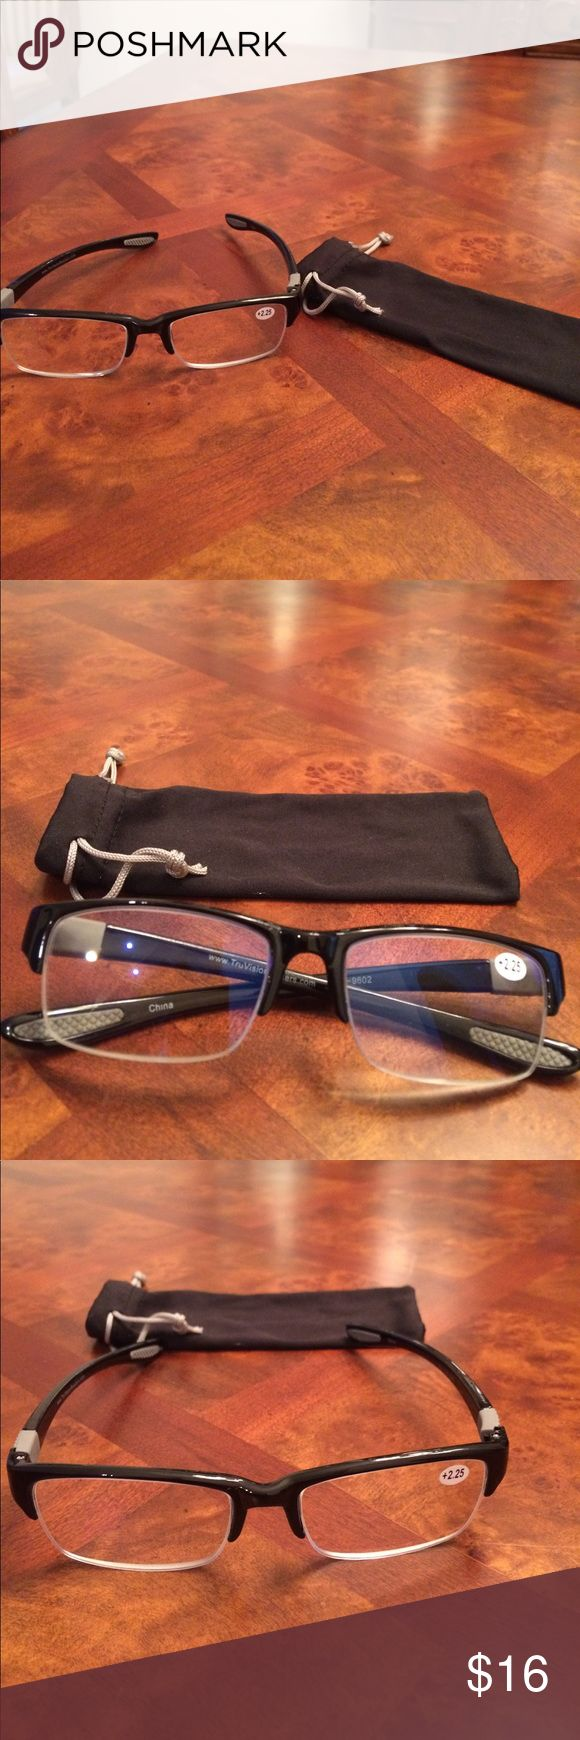 NWT Unisex True Vision Reading Glasses 👓 +2.25 Incredible quality. Black half frame. Spring hinges, Dura Tight screws, rubber inside ear pads, lightweight, microfiber cleaning bag. True Vision Accessories Glasses